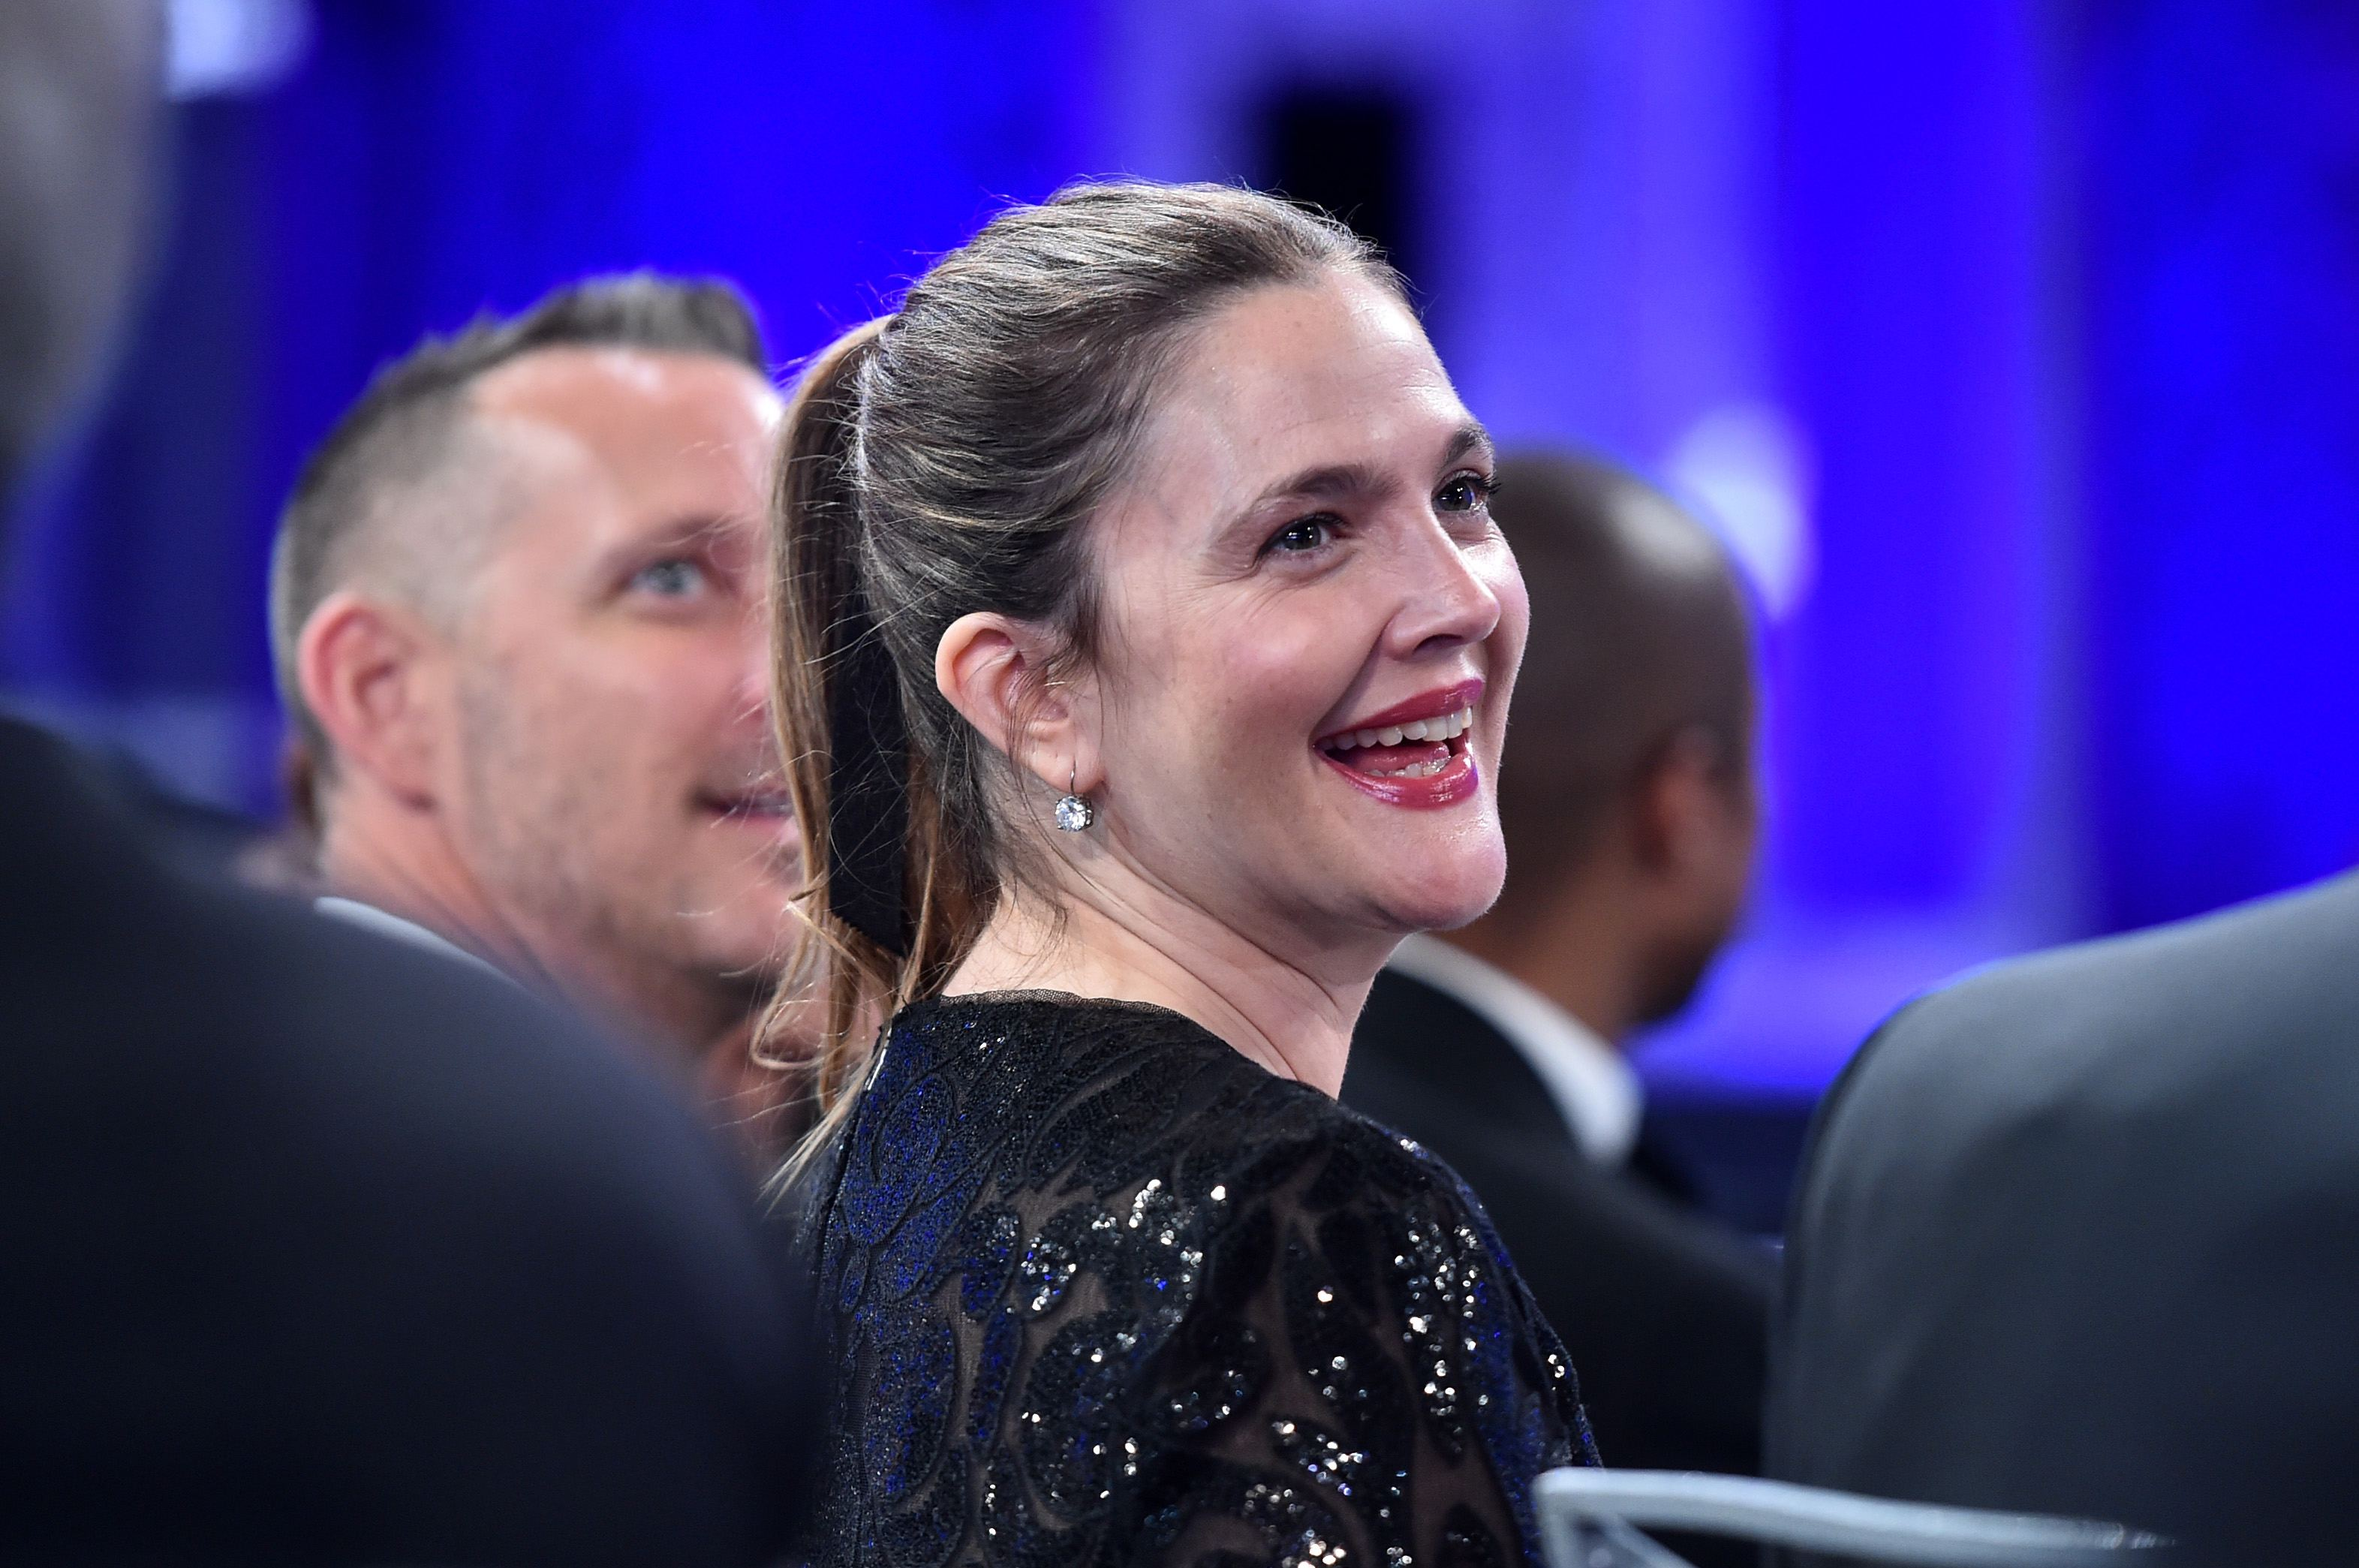 Drew Barrymore | Alberto E. Rodriguez/Getty Images for Turner